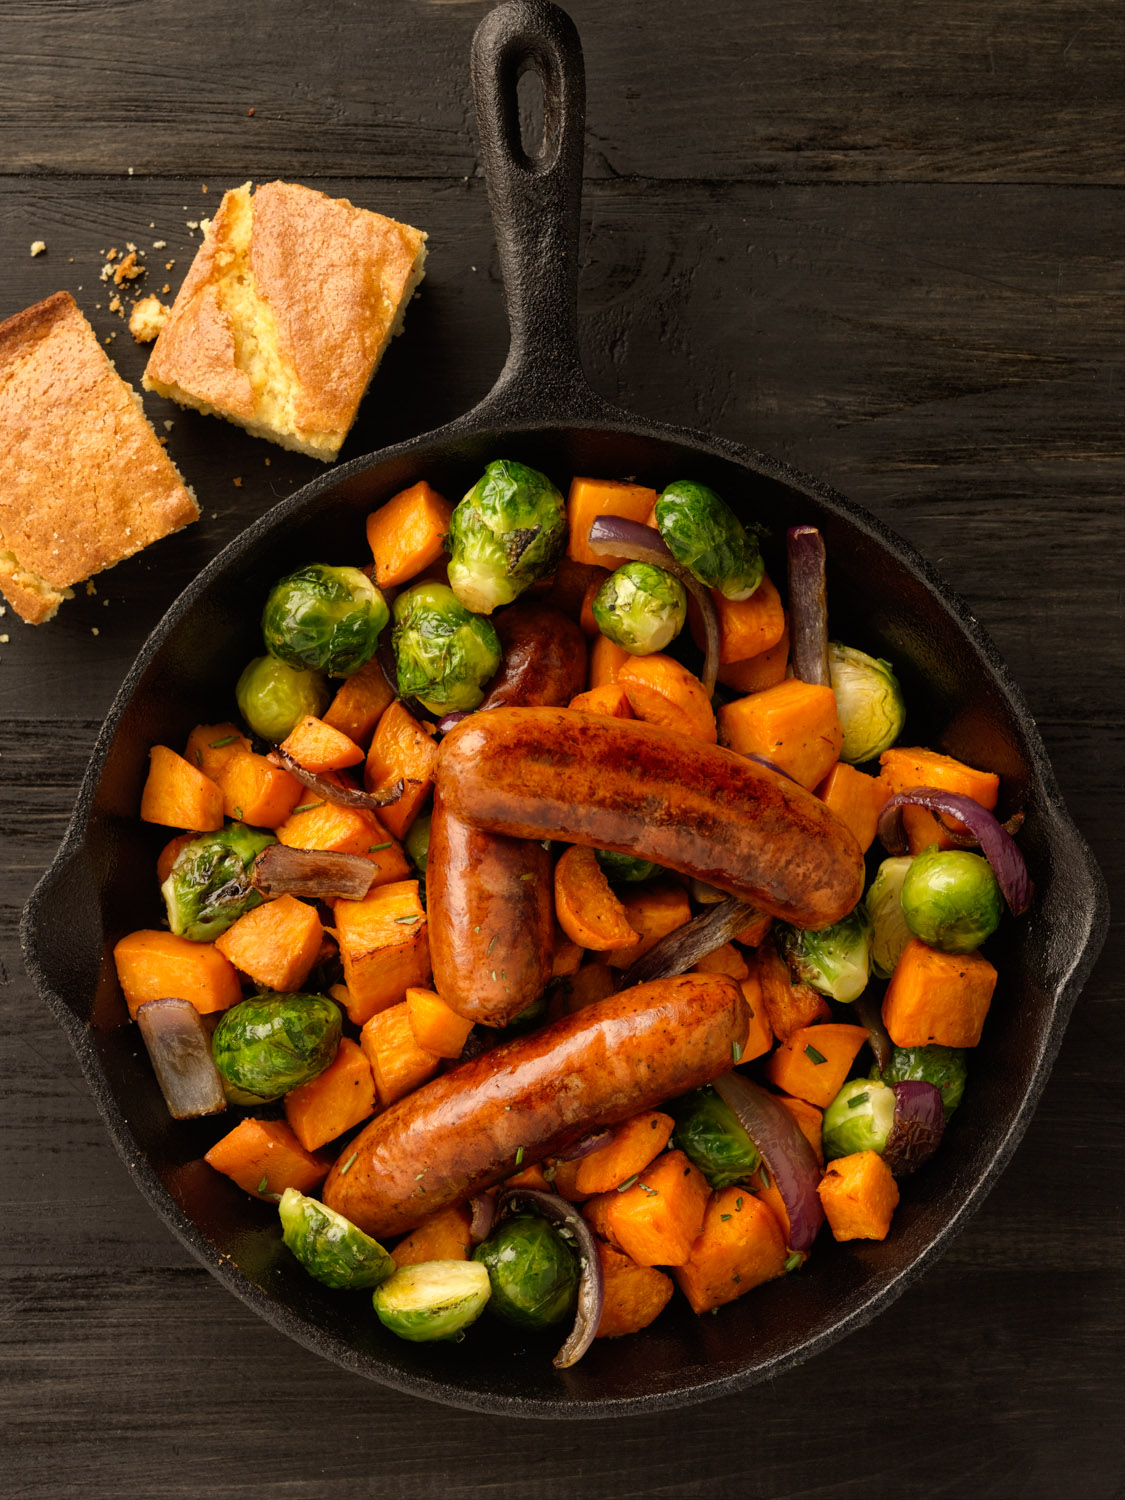 Skillet Sausages Food Photo